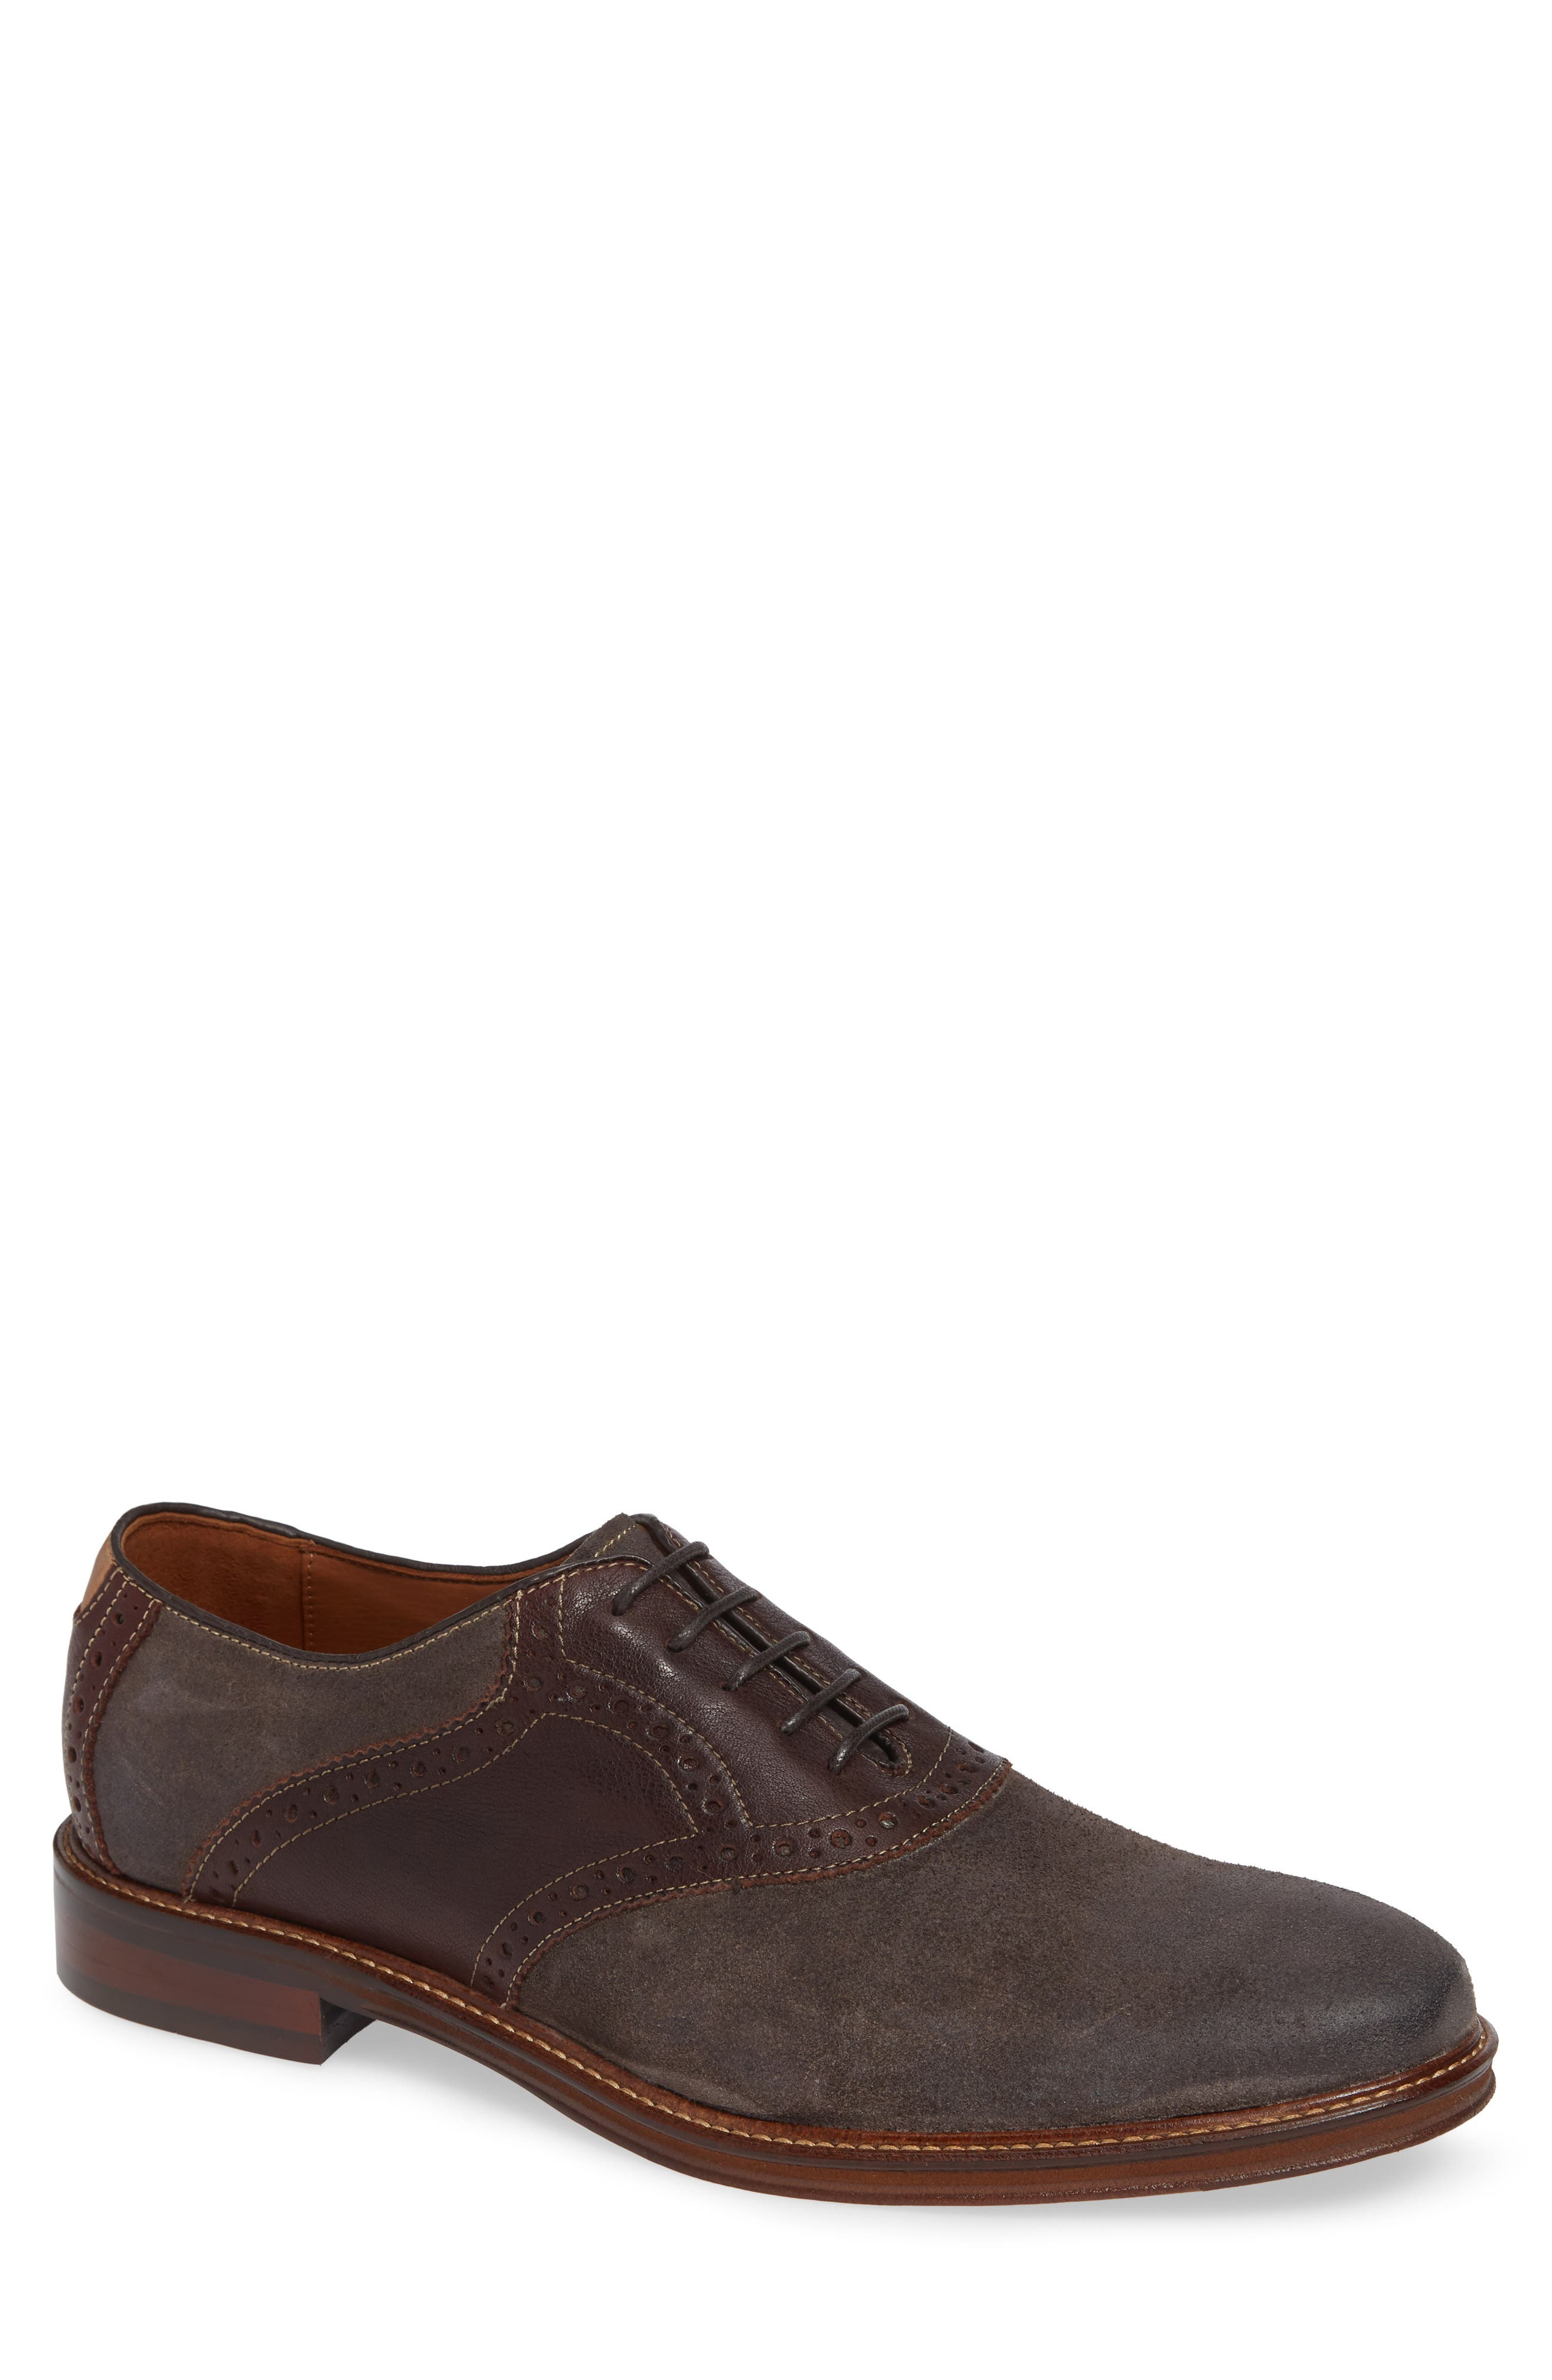 Warner Saddle Shoe,                             Main thumbnail 1, color,                             Dark Grey Suede